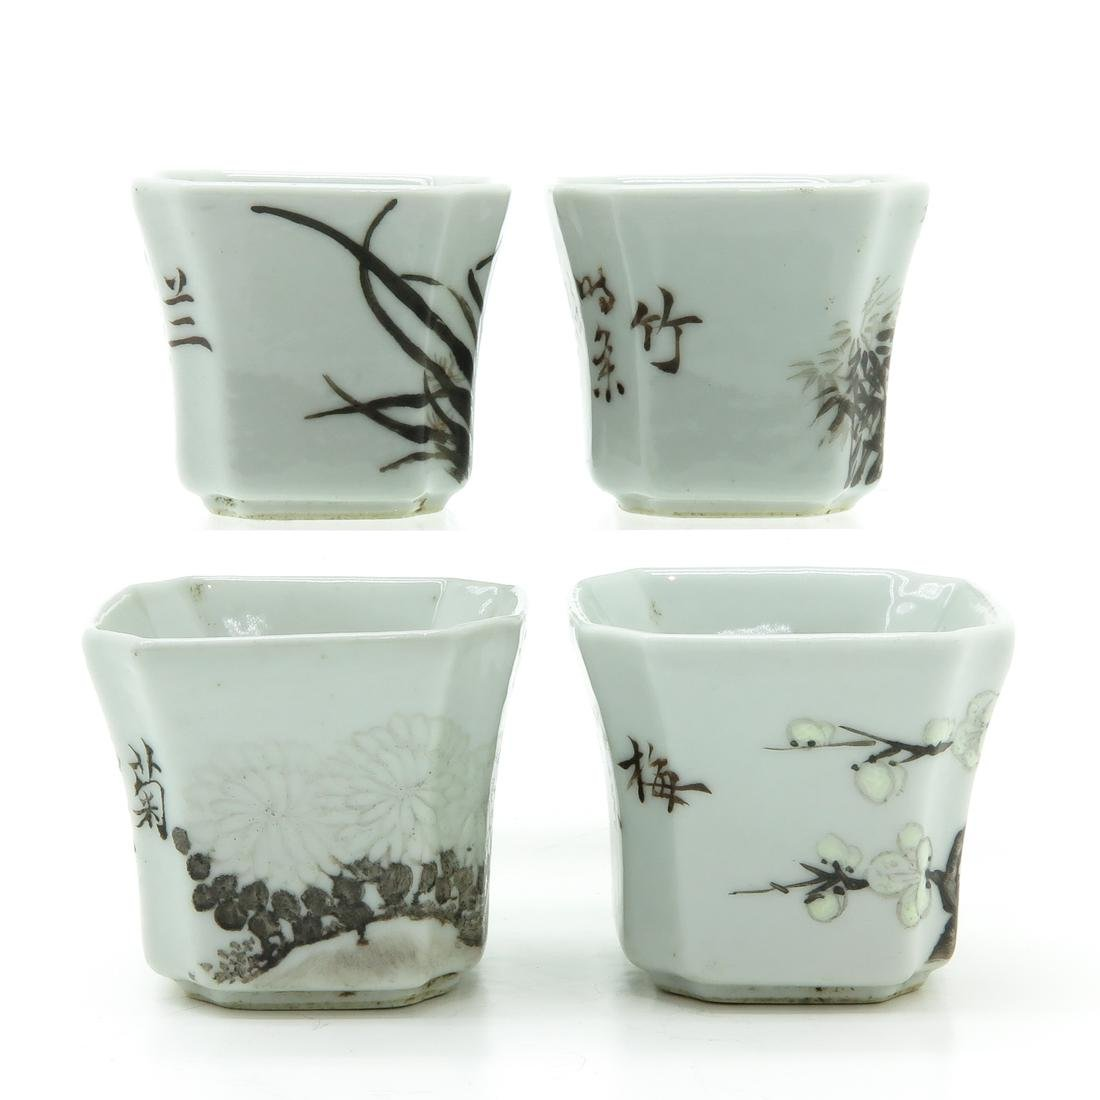 Lot of 4 Small Planters - 4